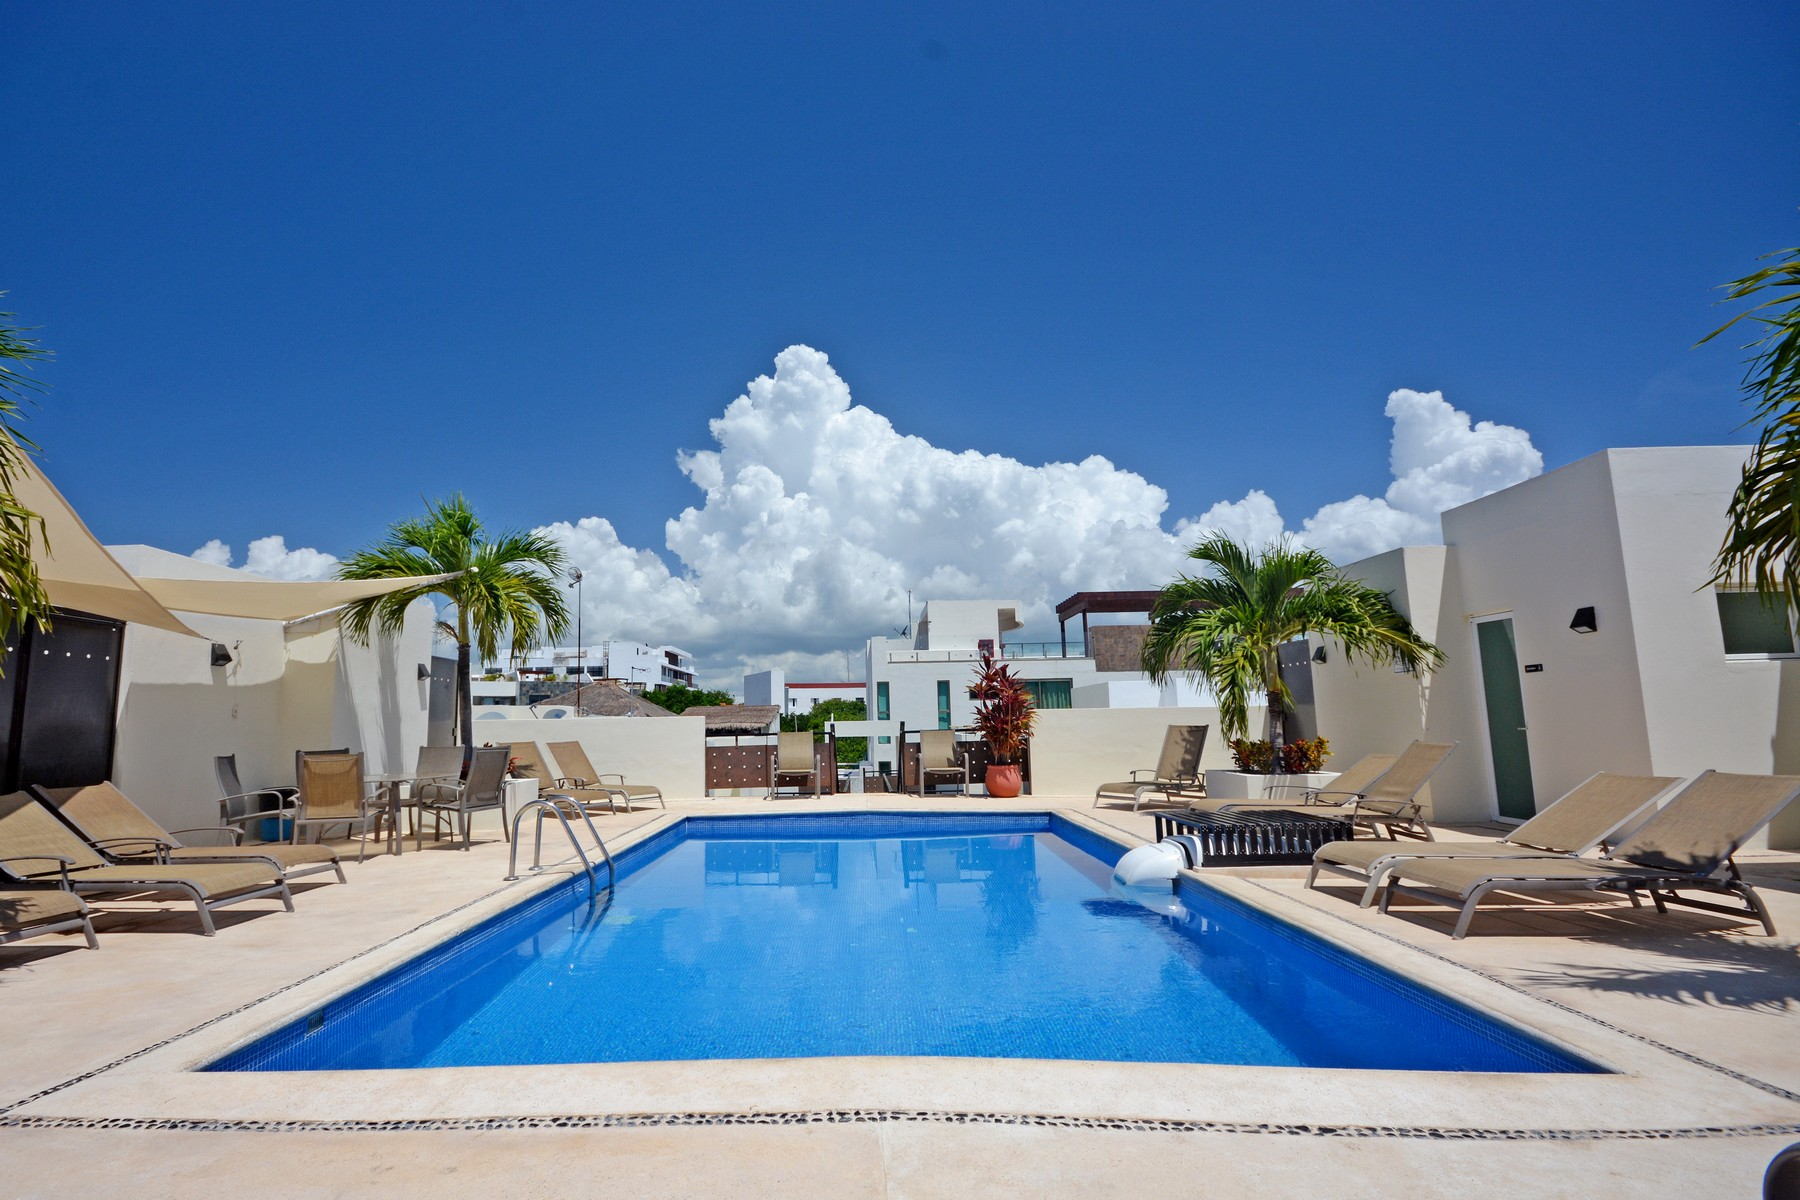 Additional photo for property listing at PENTHOUSE ESTILO CARIBEÑO 42nd Street, between Cozumel Avenue & 1st Avenue L-001, Mza 157 Playa Del Carmen, Quintana Roo 77710 México